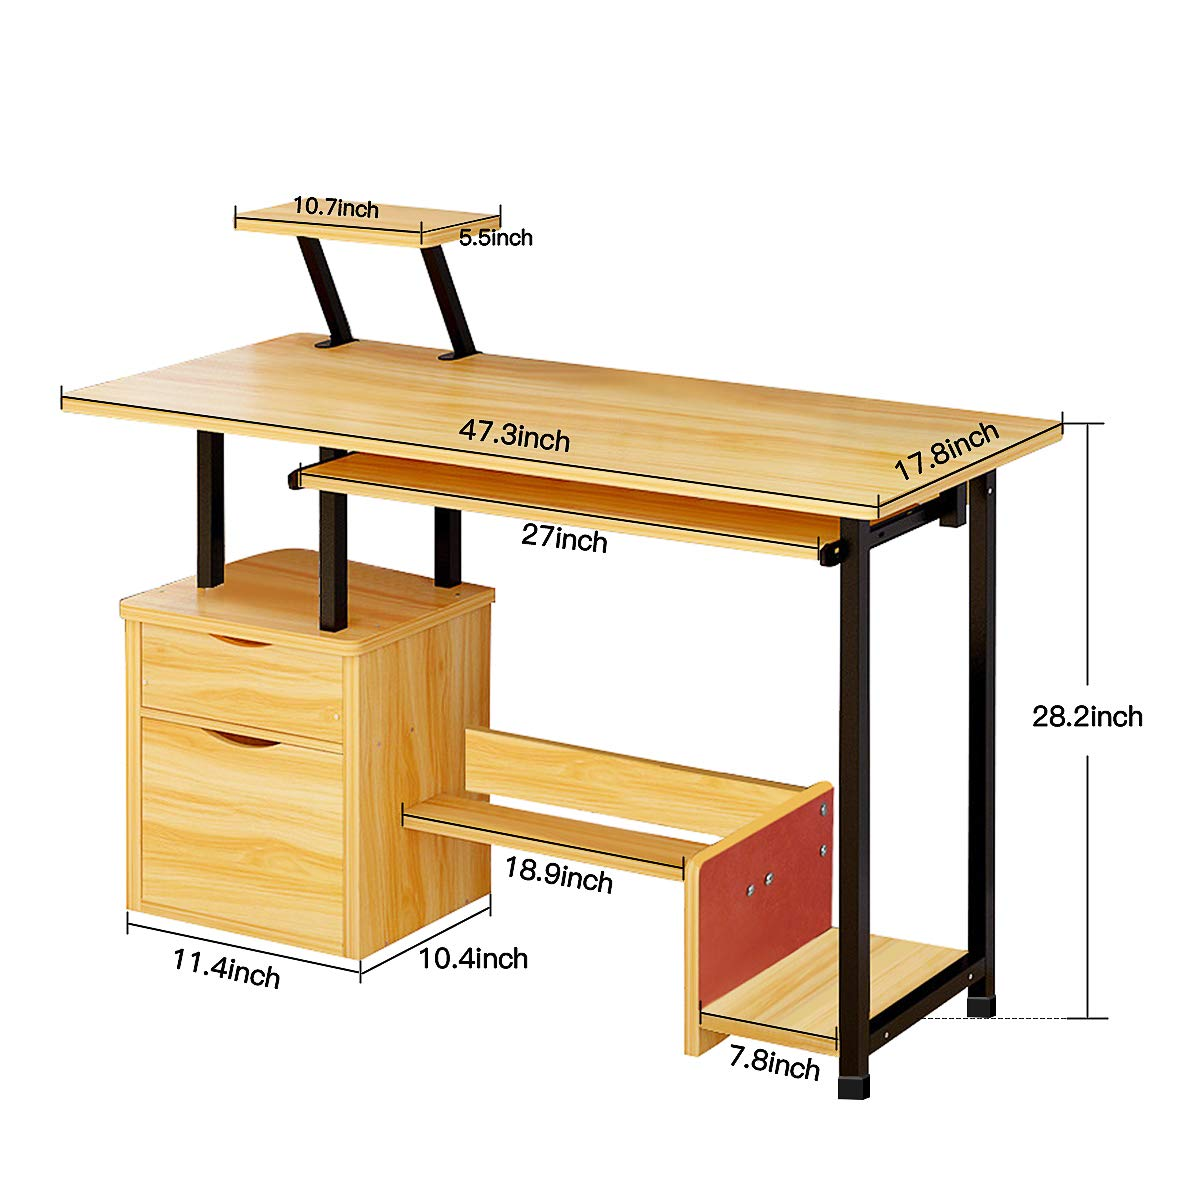 Computer Desk,Laptop Desk Modern Style Writing Study Table Home Office Desk Compact Gaming Desk Multipurpose PC Workstation Steel Frame and Bookshelf for Home Office with Keyboard Tray & CPU Holder by Suninhome (Image #6)